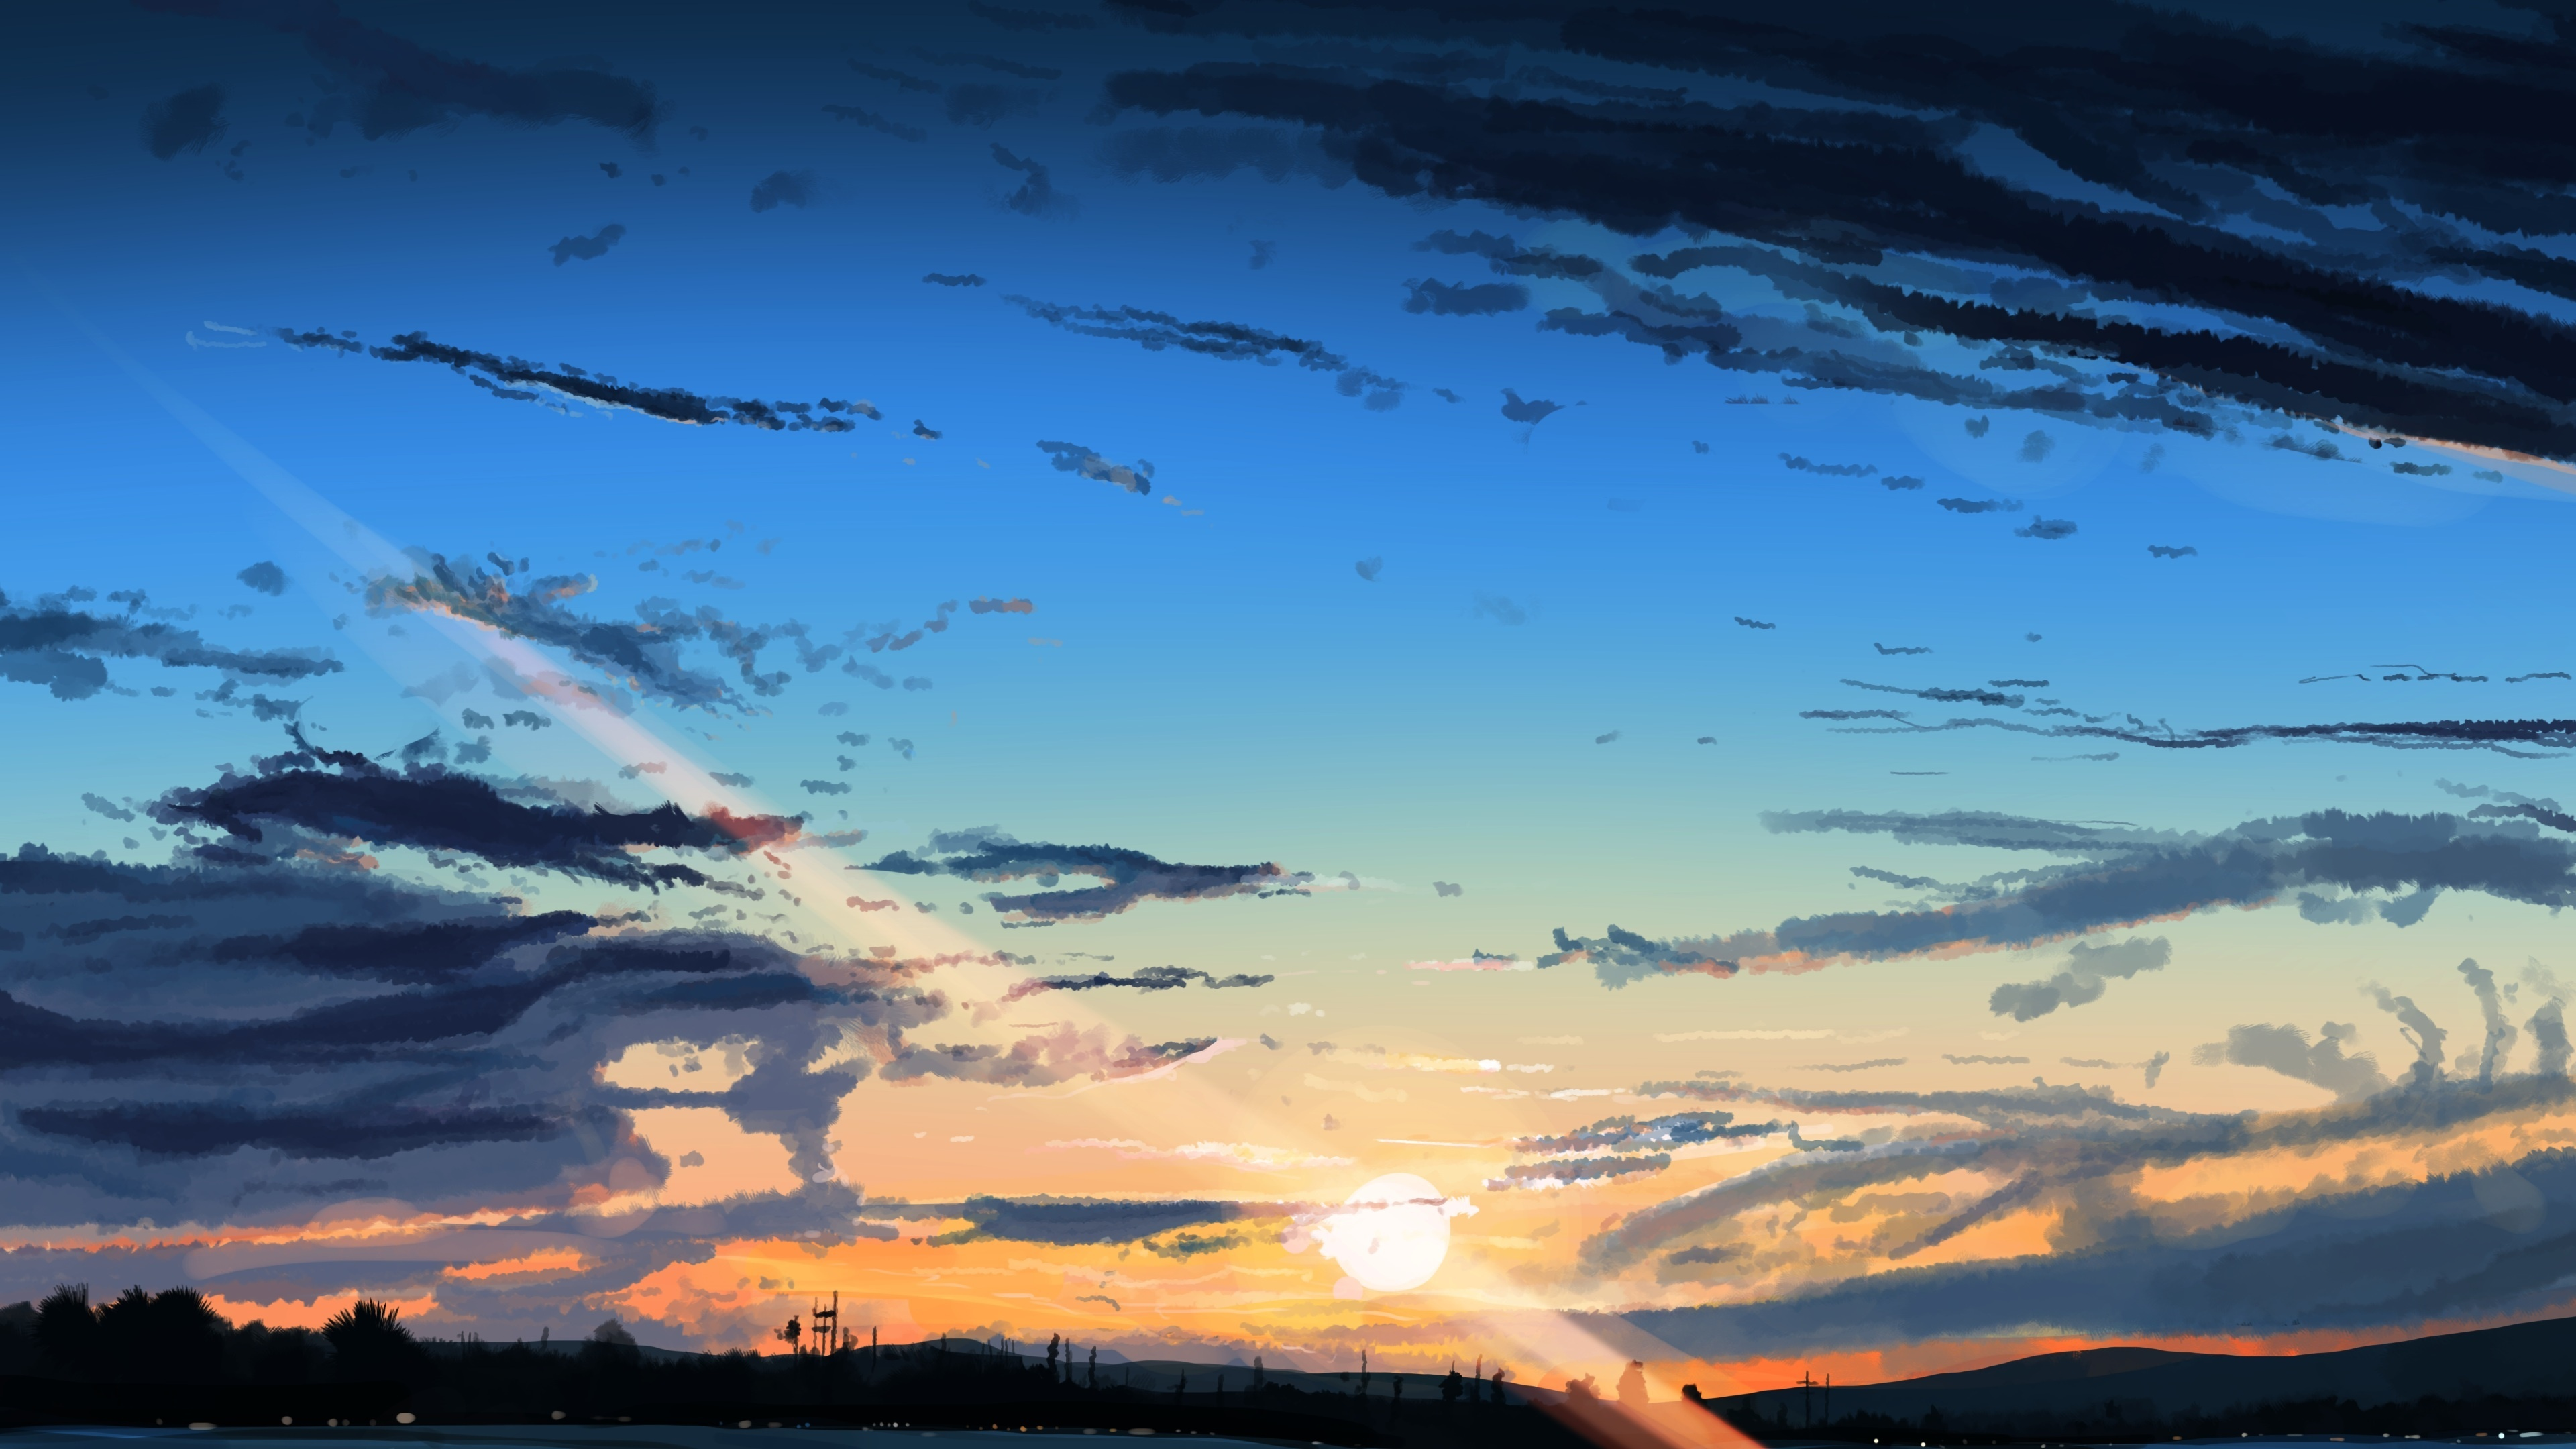 Sky Anime Download 3840x2400 Wallpaper Sunset Sky Anime Clouds Original